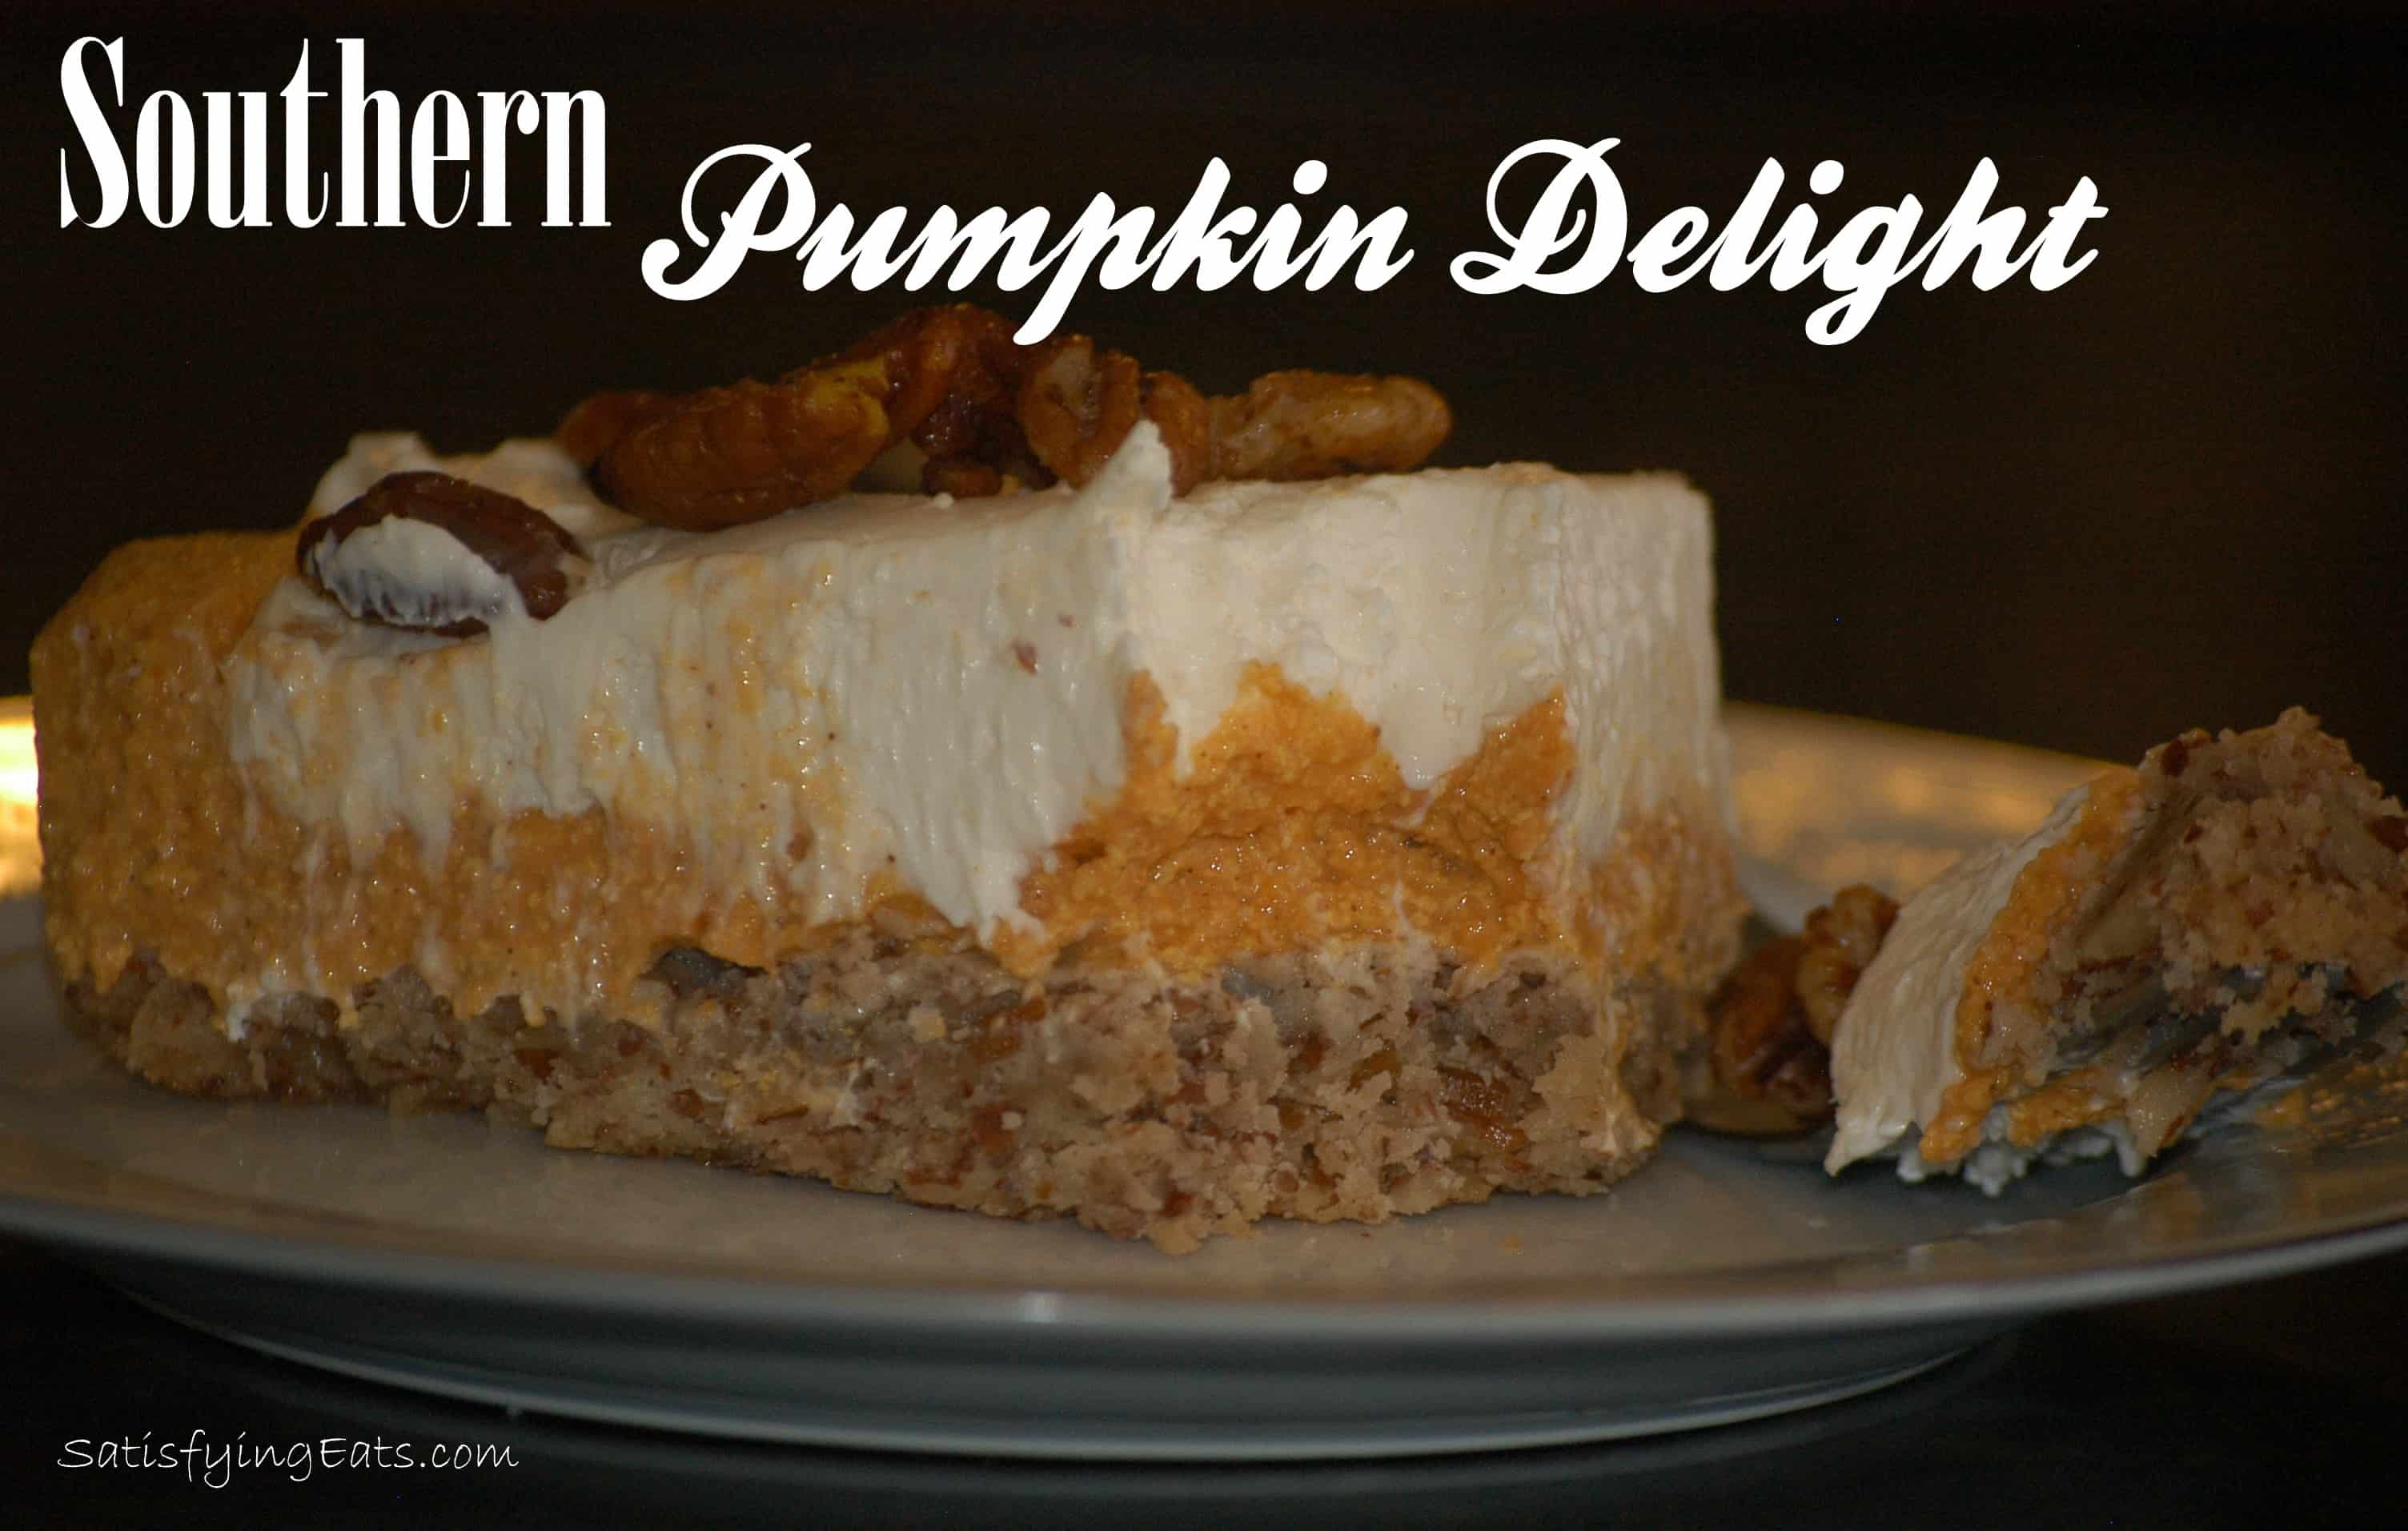 Southern pumpkin delight